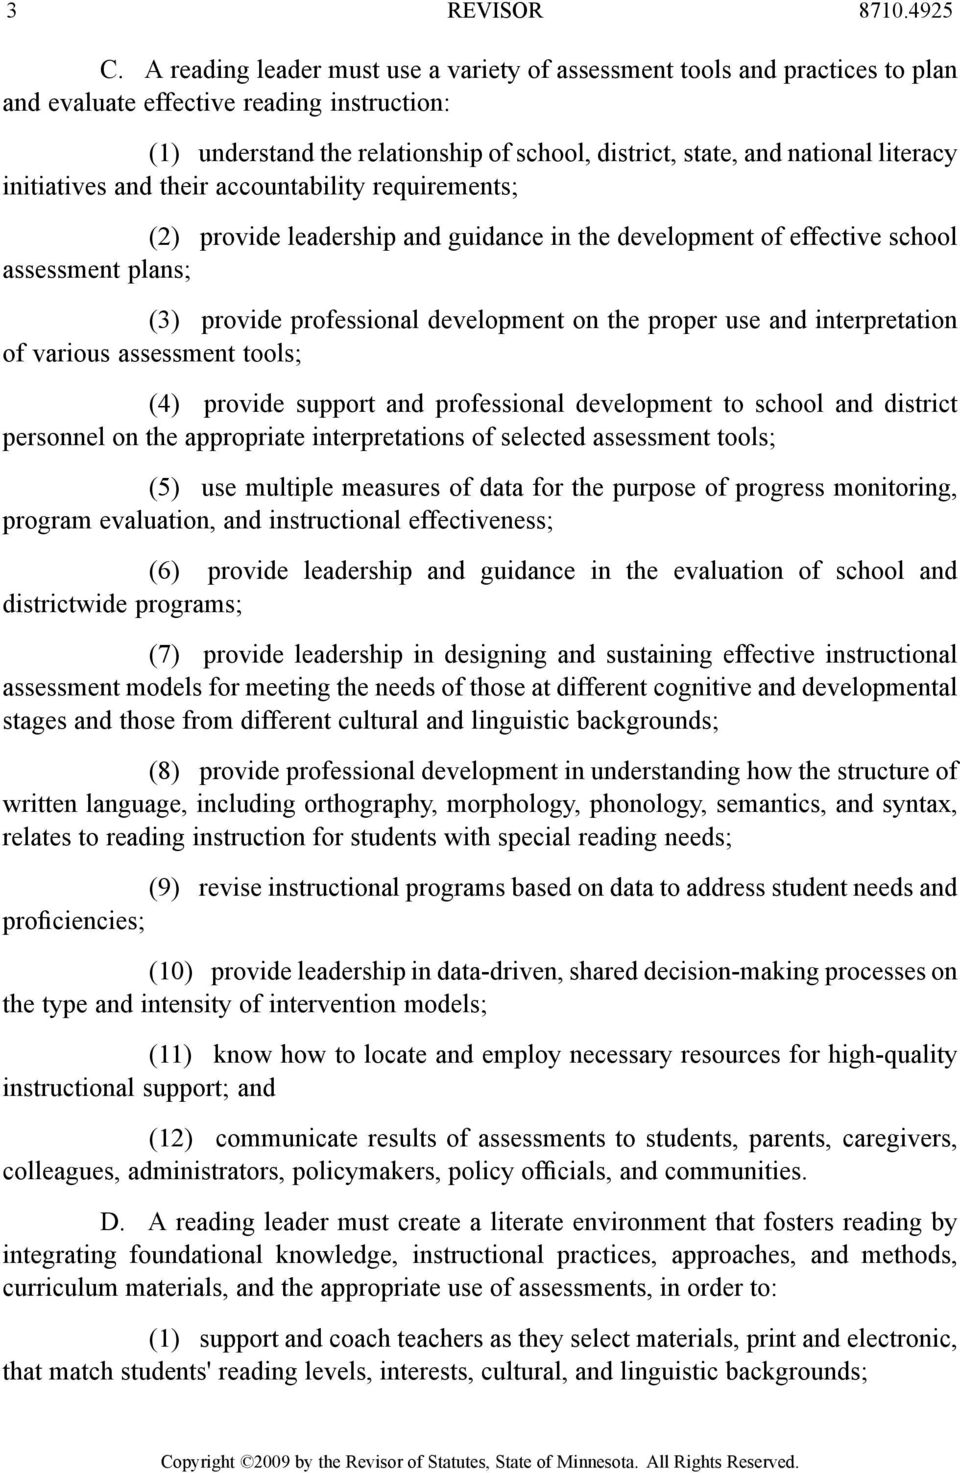 literacy initiatives and their accountability requirements; (2) provide leadership and guidance in the development of effective school assessment plans; (3) provide professional development on the